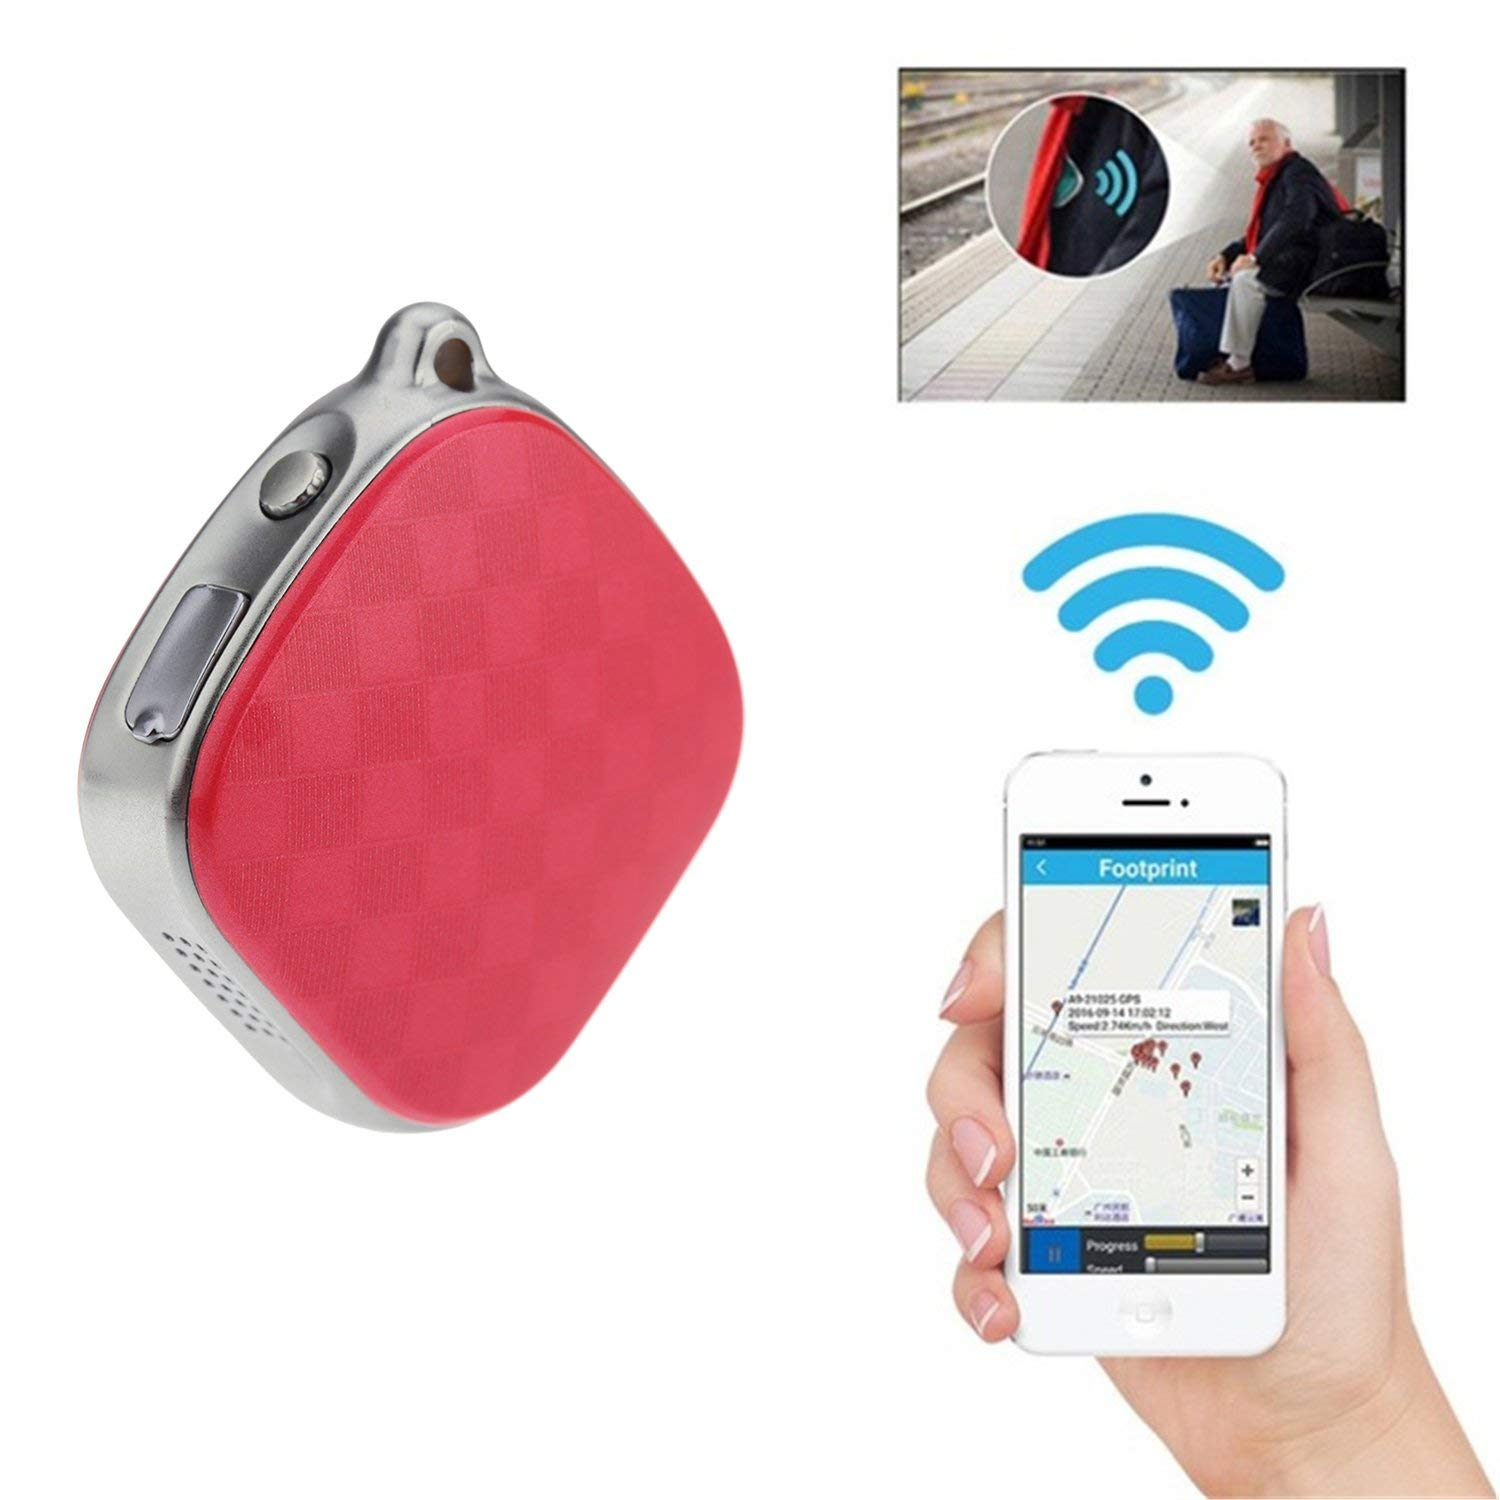 Tracker GPS Mini,Hangang Finder Locator 2G GSM (GPS+AGPS+WIFI+LBS) Locating,SOS Alarm,Geo-fence,Voice Monitor,Kids/Children/Pets/Vehicle Tracking Device,with 500mAh Battery 5 days Standby Time (red)